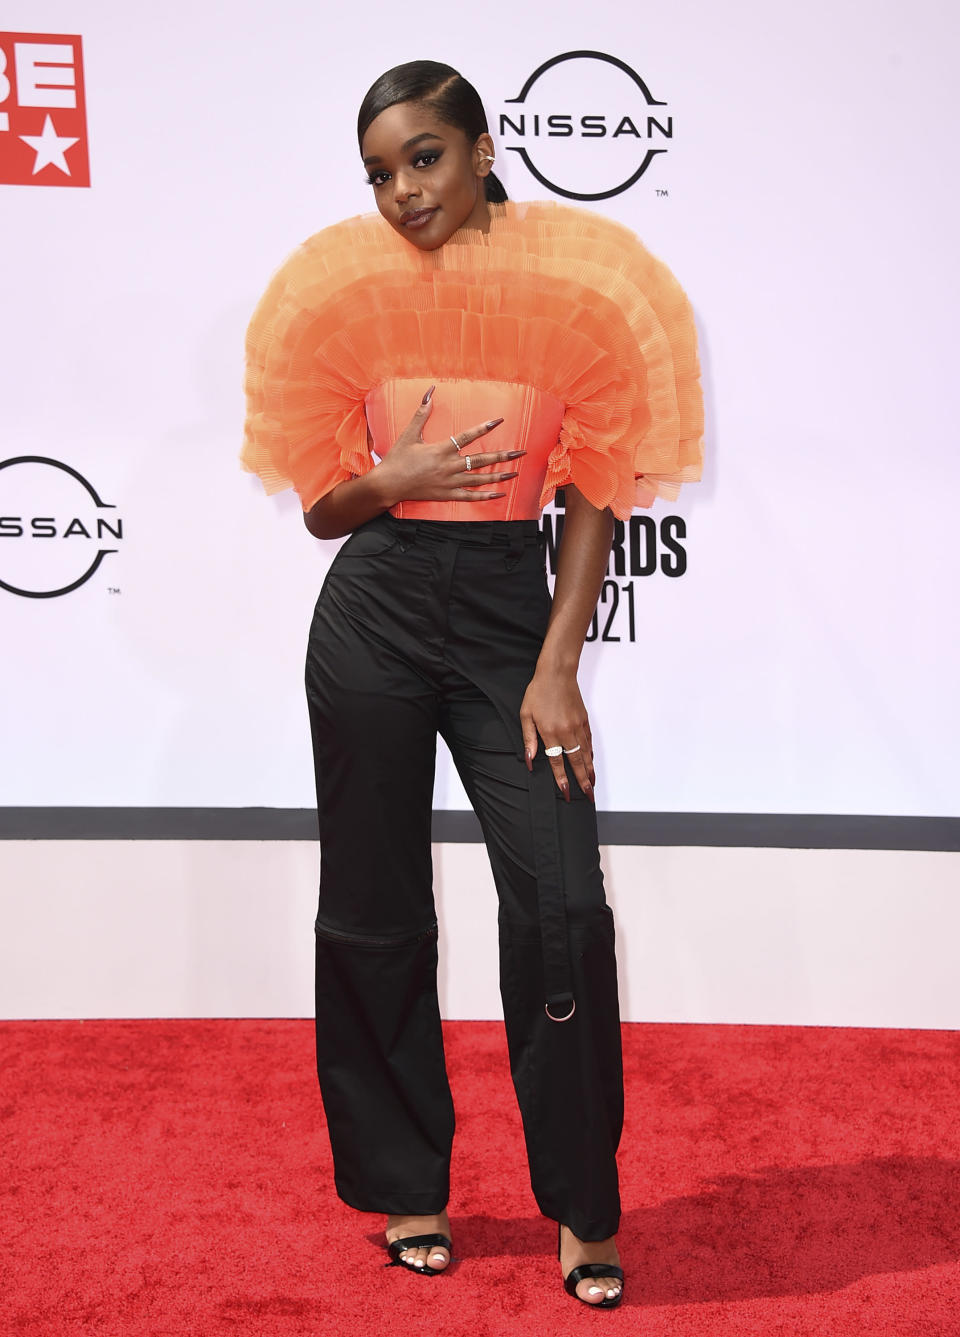 Marsai Martin arrives at the BET Awards on Sunday, June 27, 2021, at the Microsoft Theater in Los Angeles. (Photo by Jordan Strauss/Invision/AP)